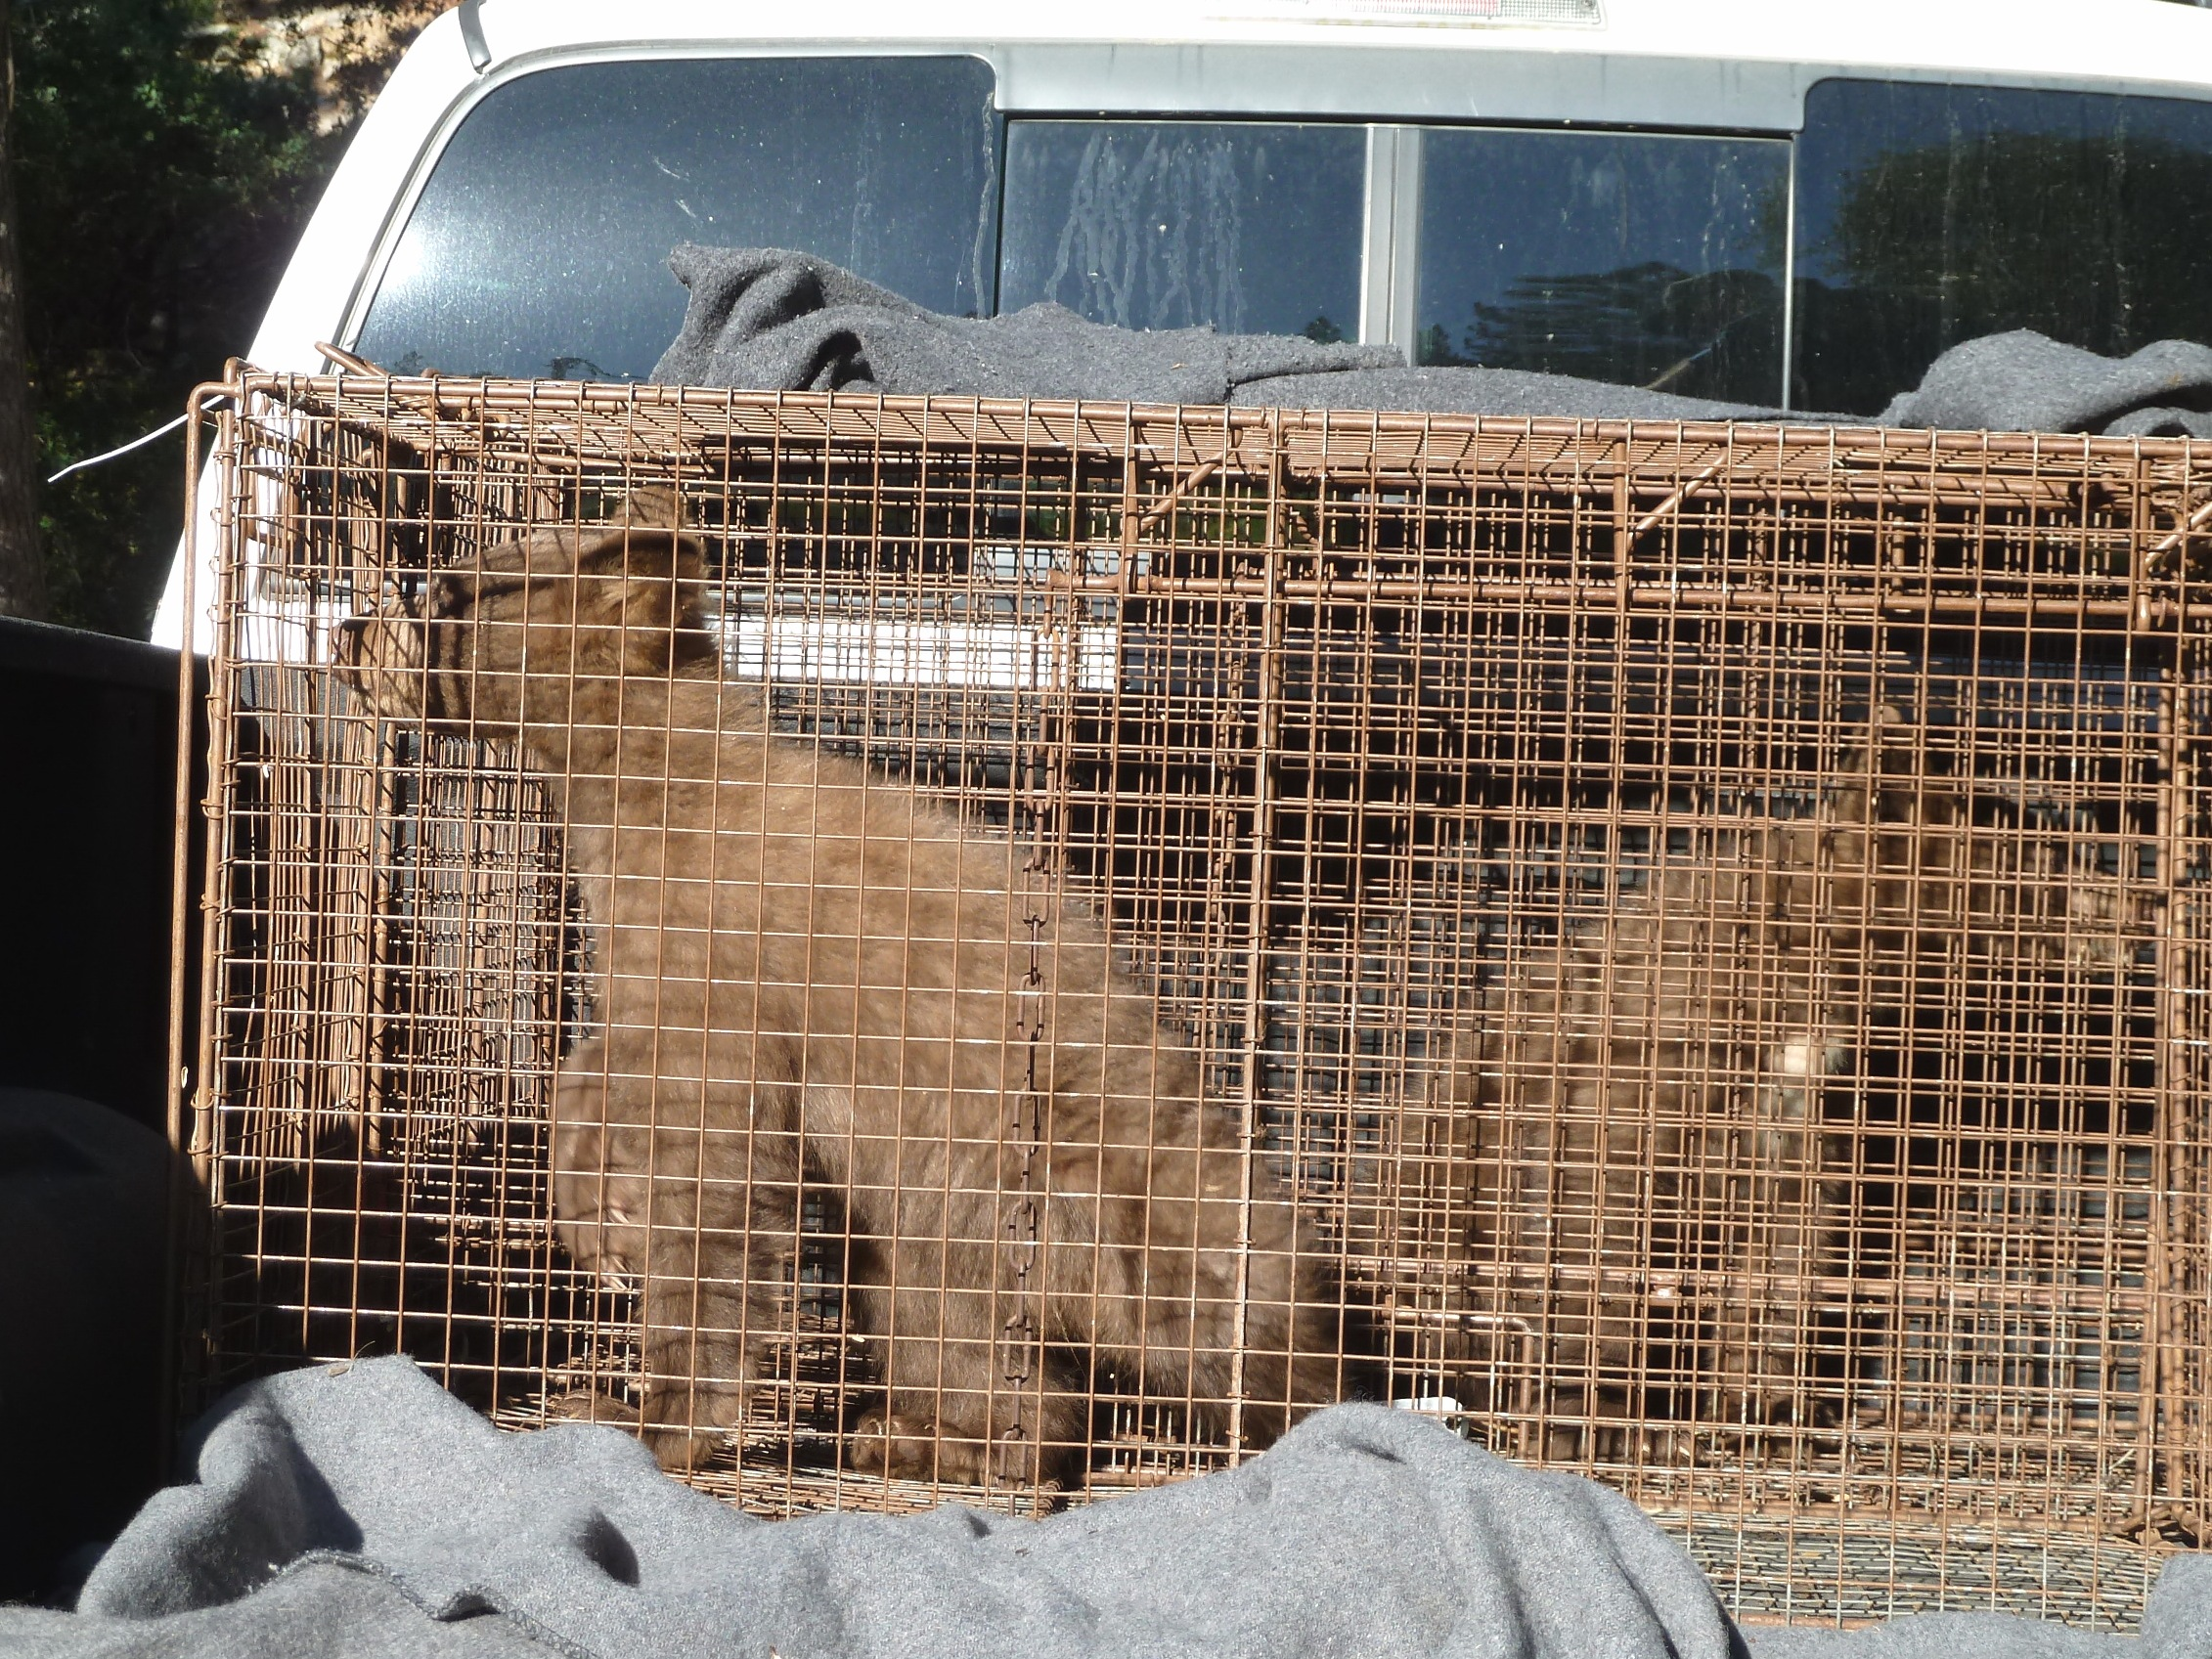 Orphaned cubs rescued in nevada city knco for Nevada game and fish